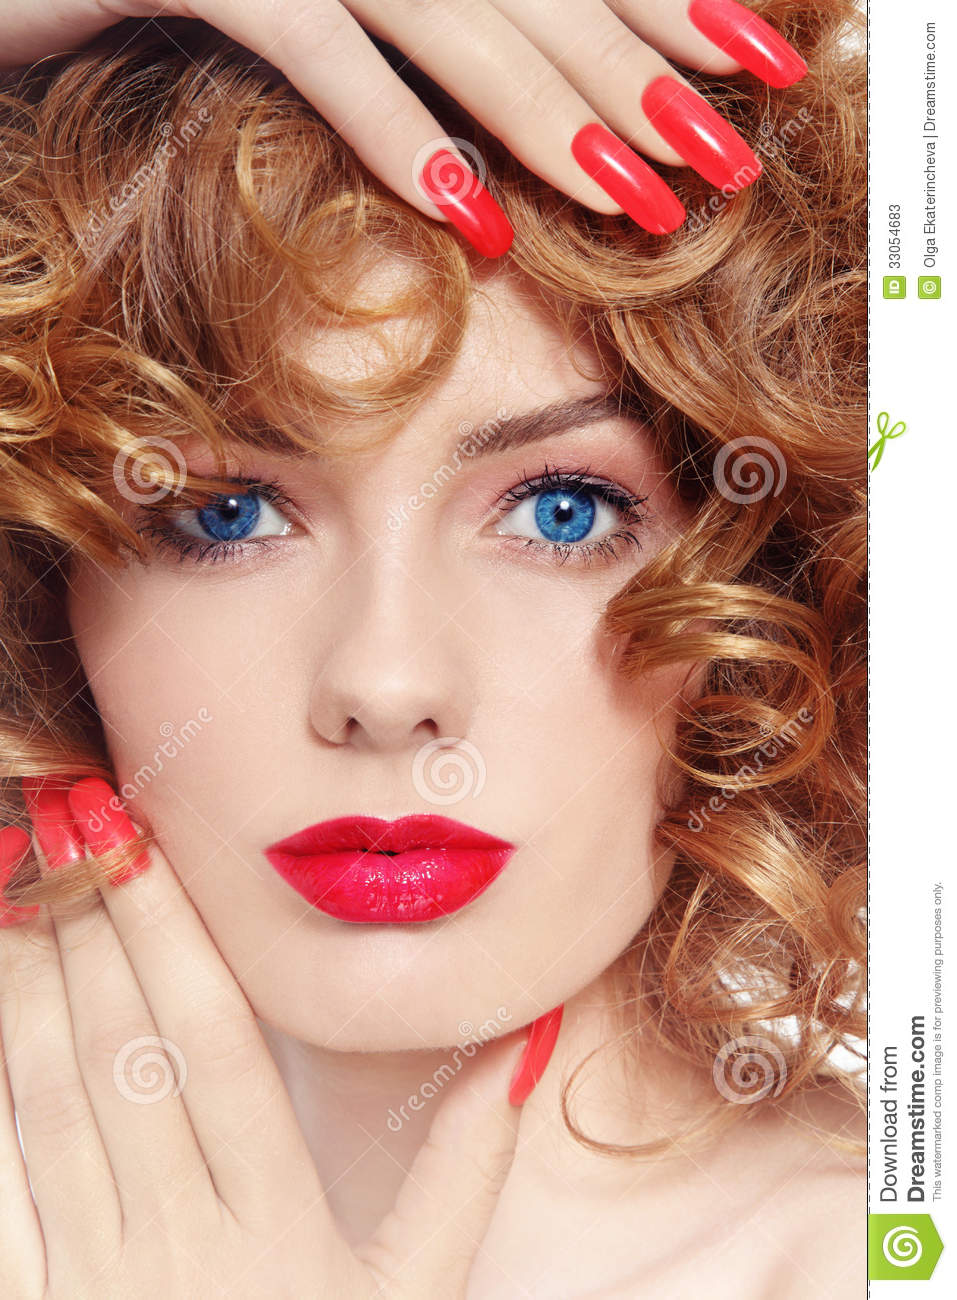 Nails and lipstick stock image. Image of complexion, girl - 33054683